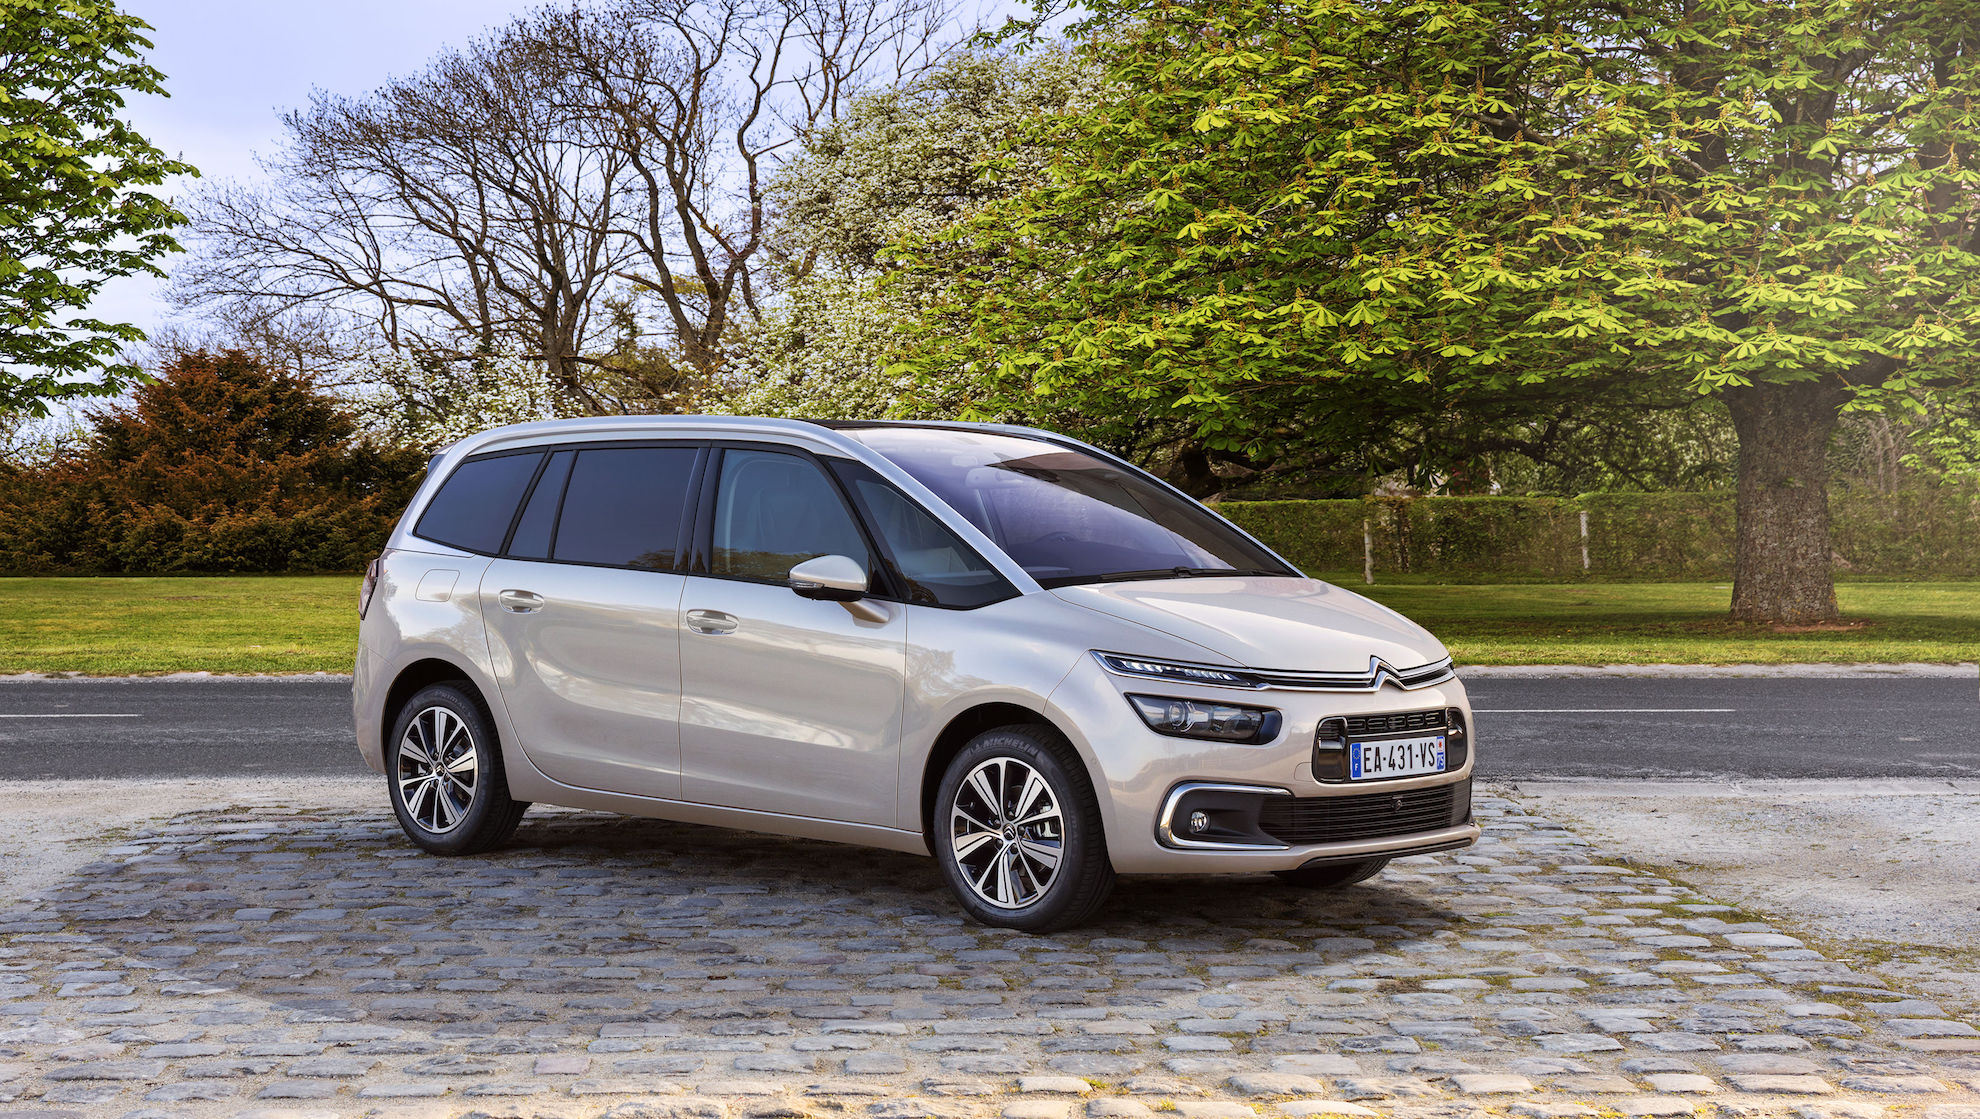 the citroen grand c4 spacetourer is proof that mpvs need not look boring